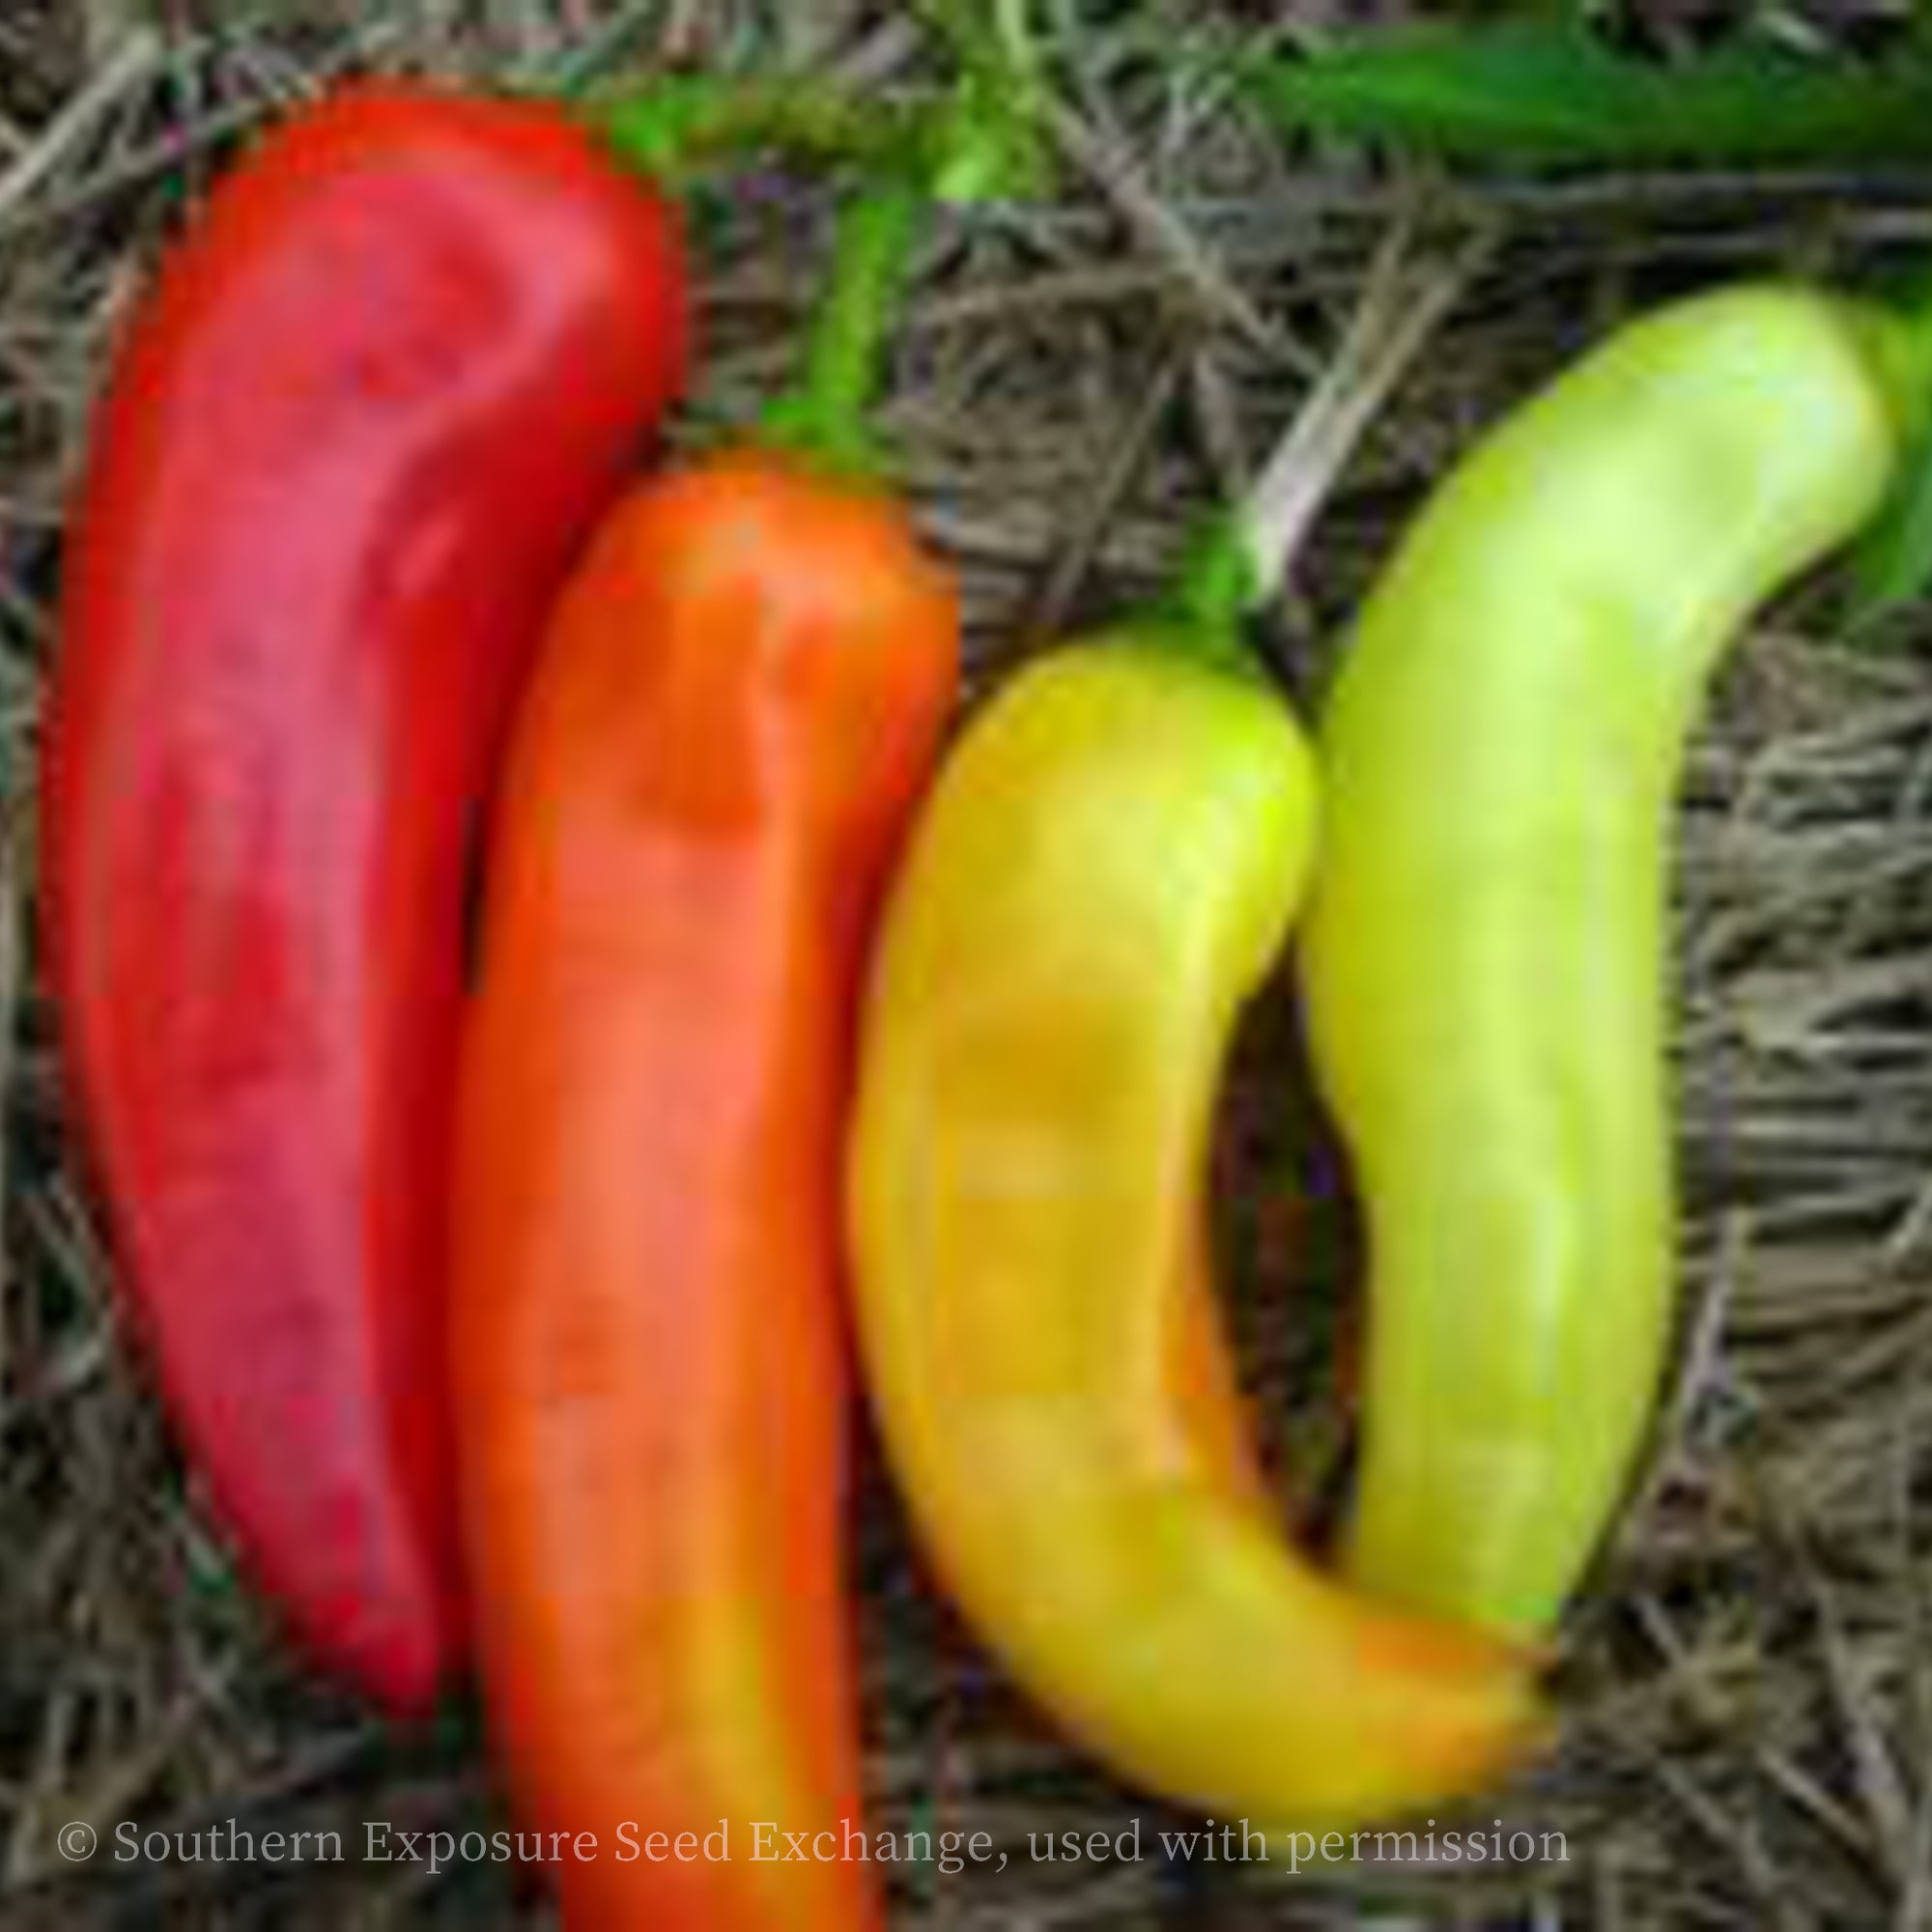 Sweet Banana Pepper (Long Sweet Hungarian)